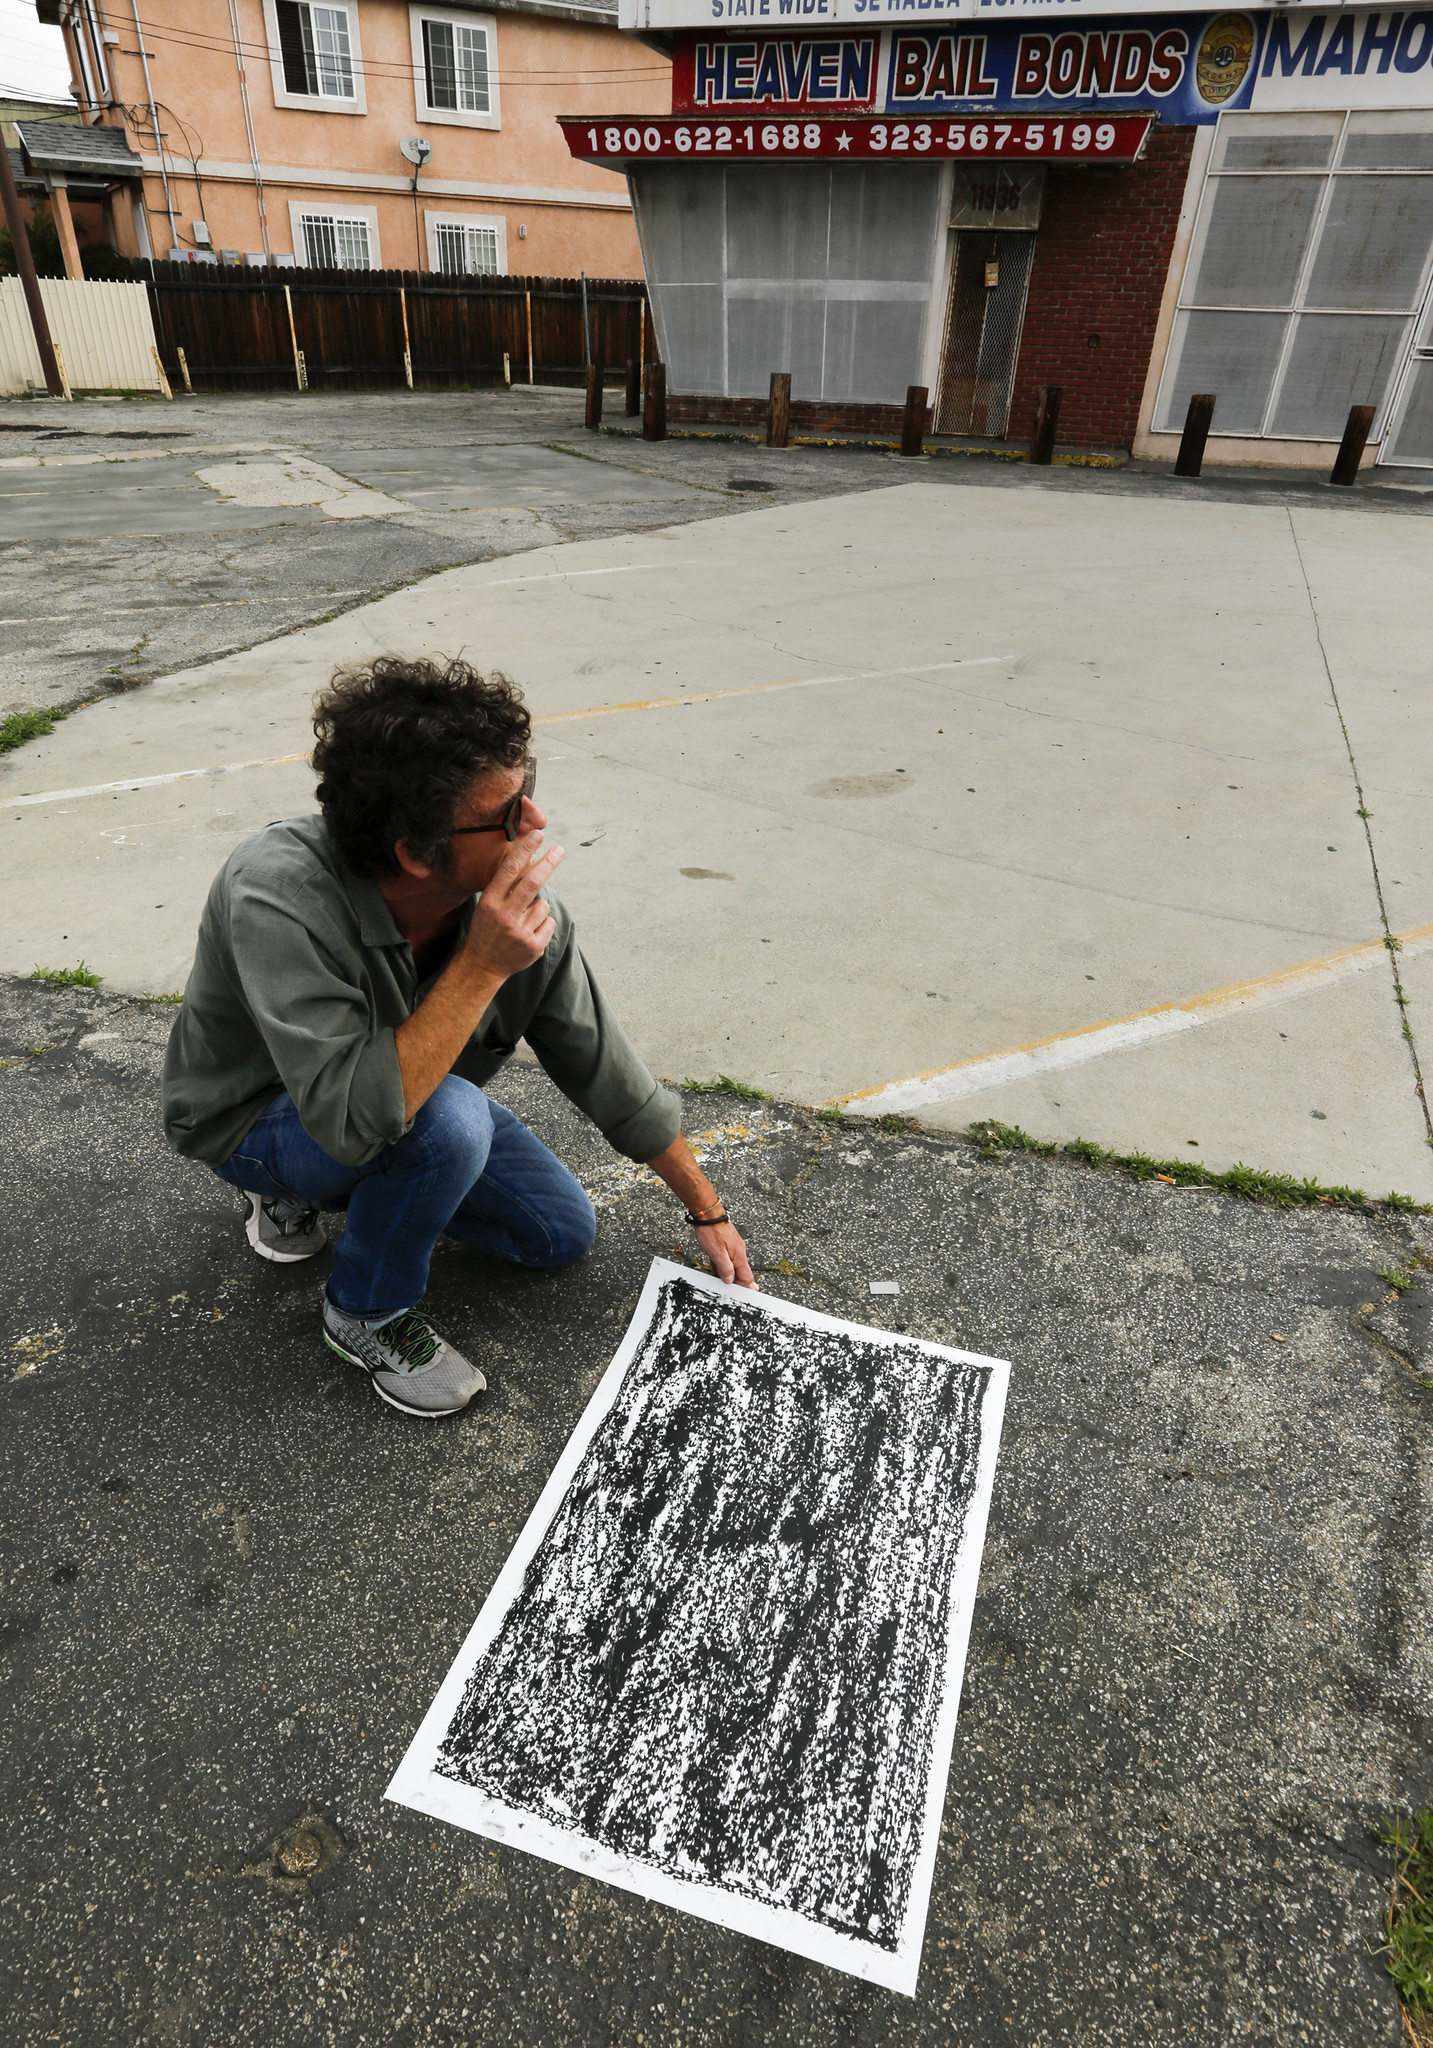 Artist Jeff Beall at the corner of Central Avenue and East 120th Street, in community of Green Meadows, with a rubbing that marks the site of an unsolved death.